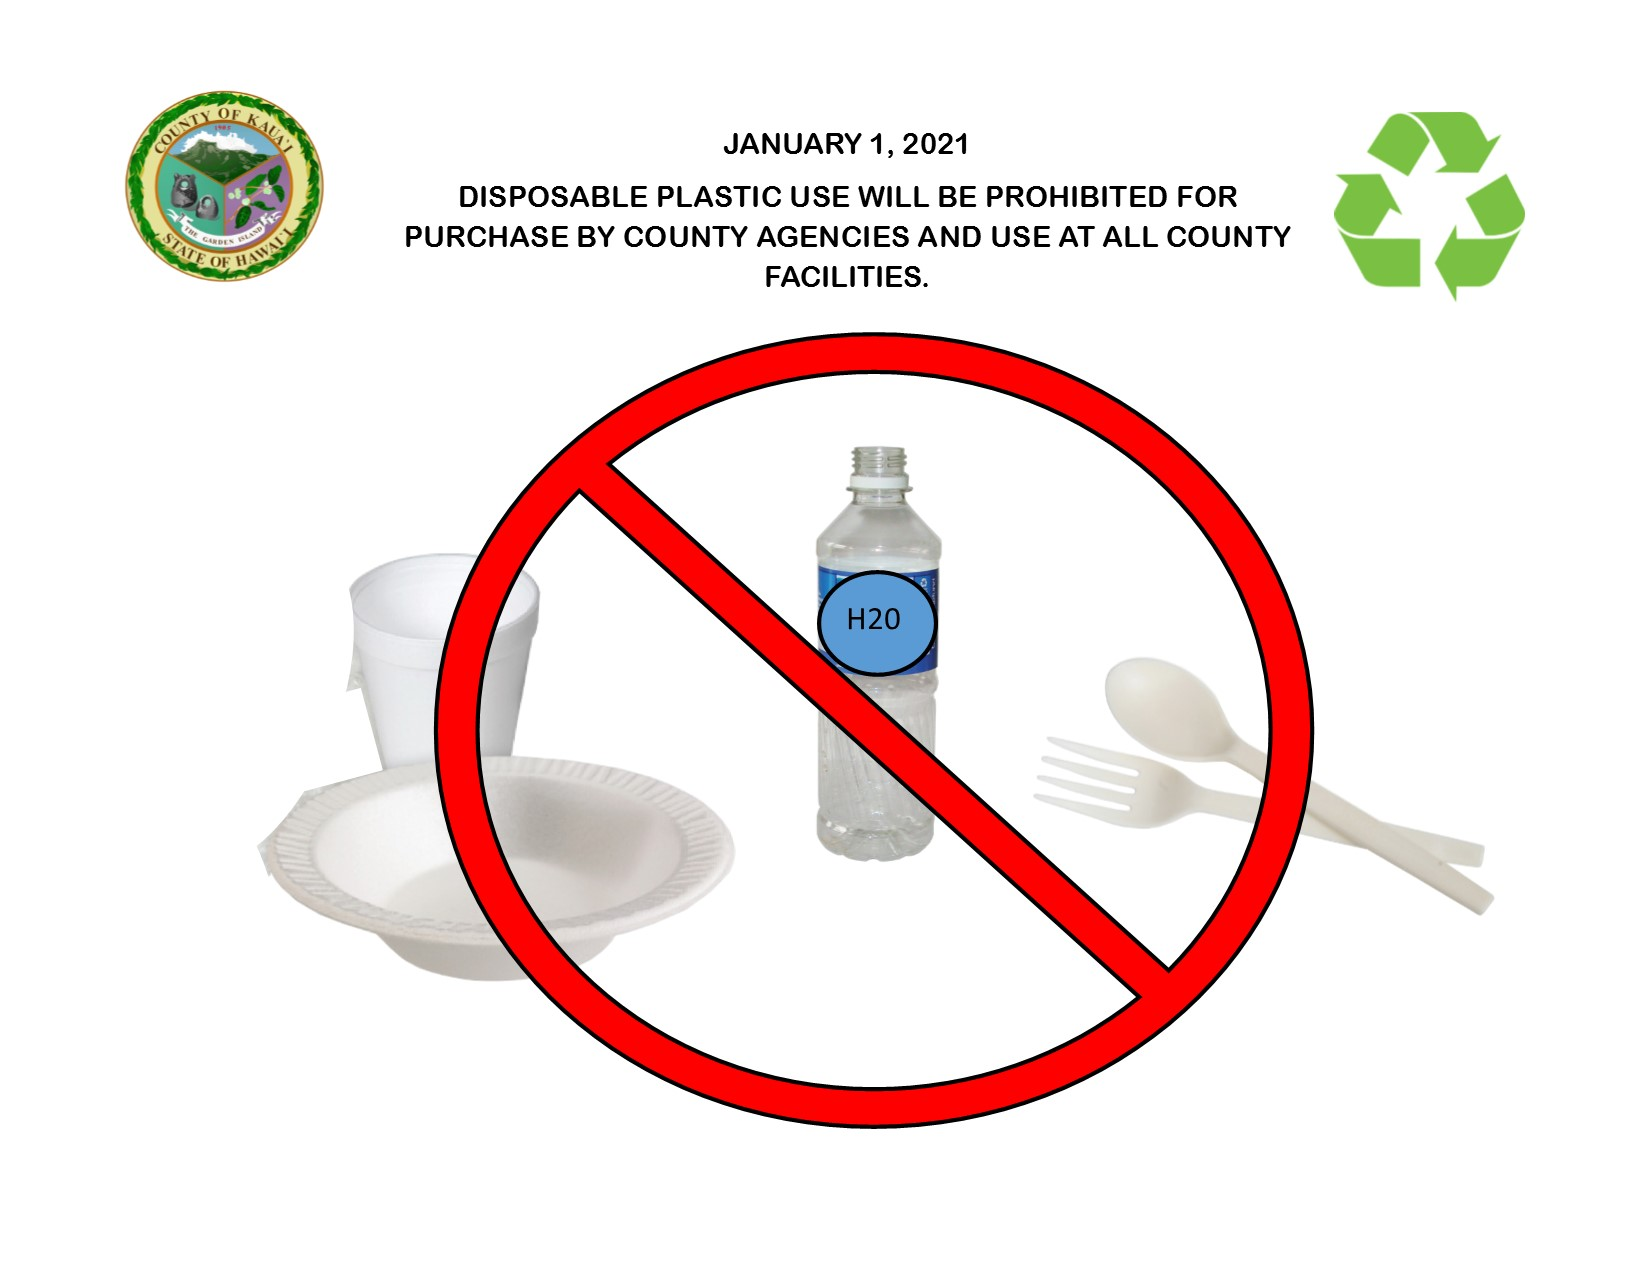 January 1, 2020 visual of plastics disposal policy